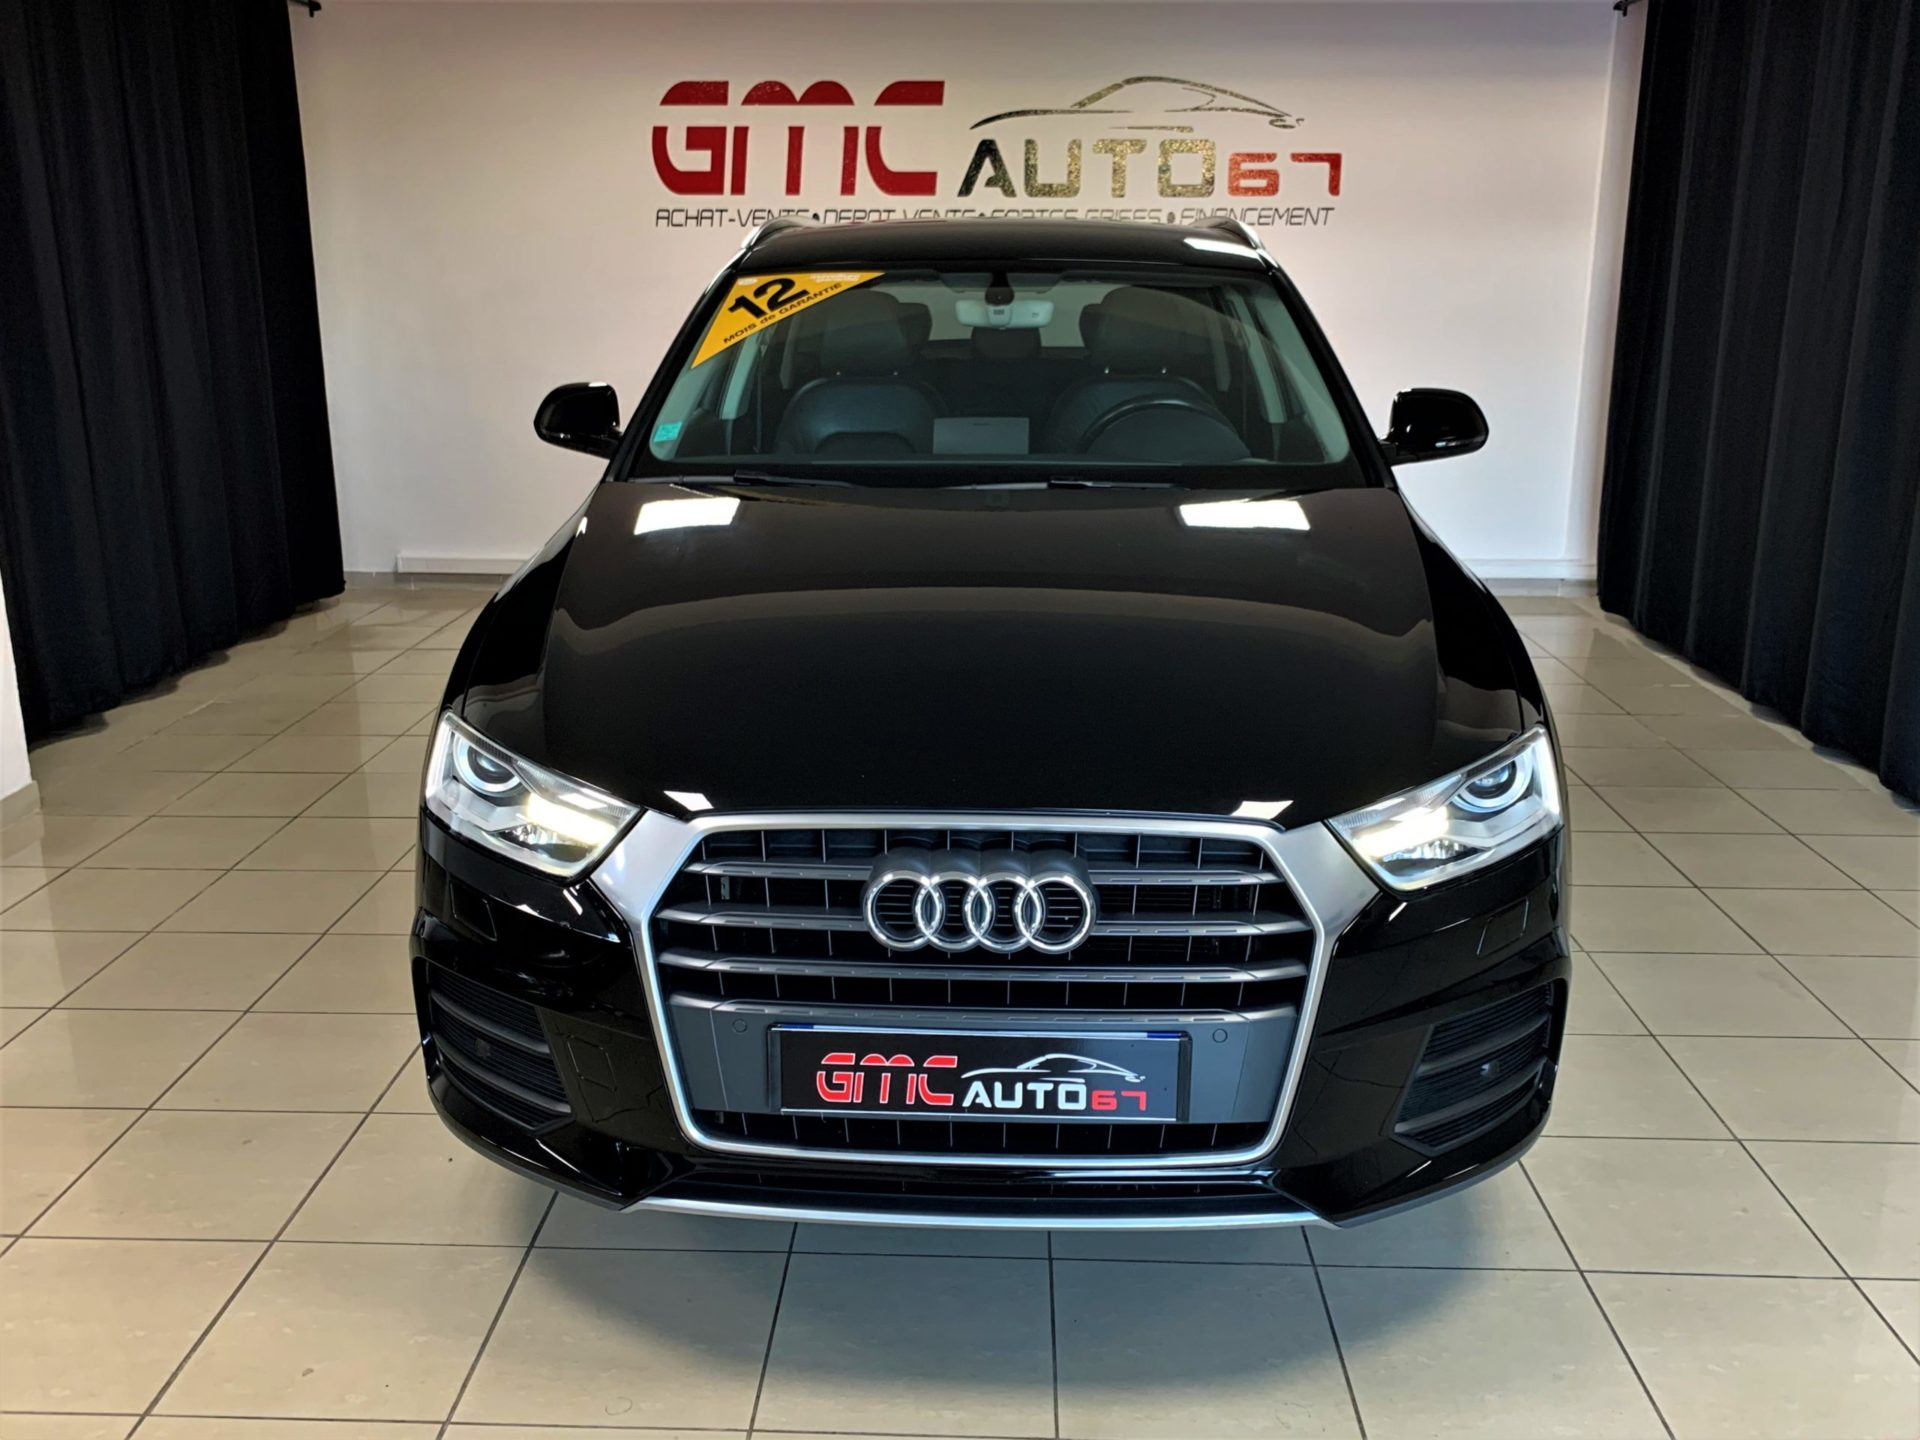 Audi Q3 1.4 TFSI COD 150 ch S tronic 6 Ambition Luxe - GMC AUTO 67